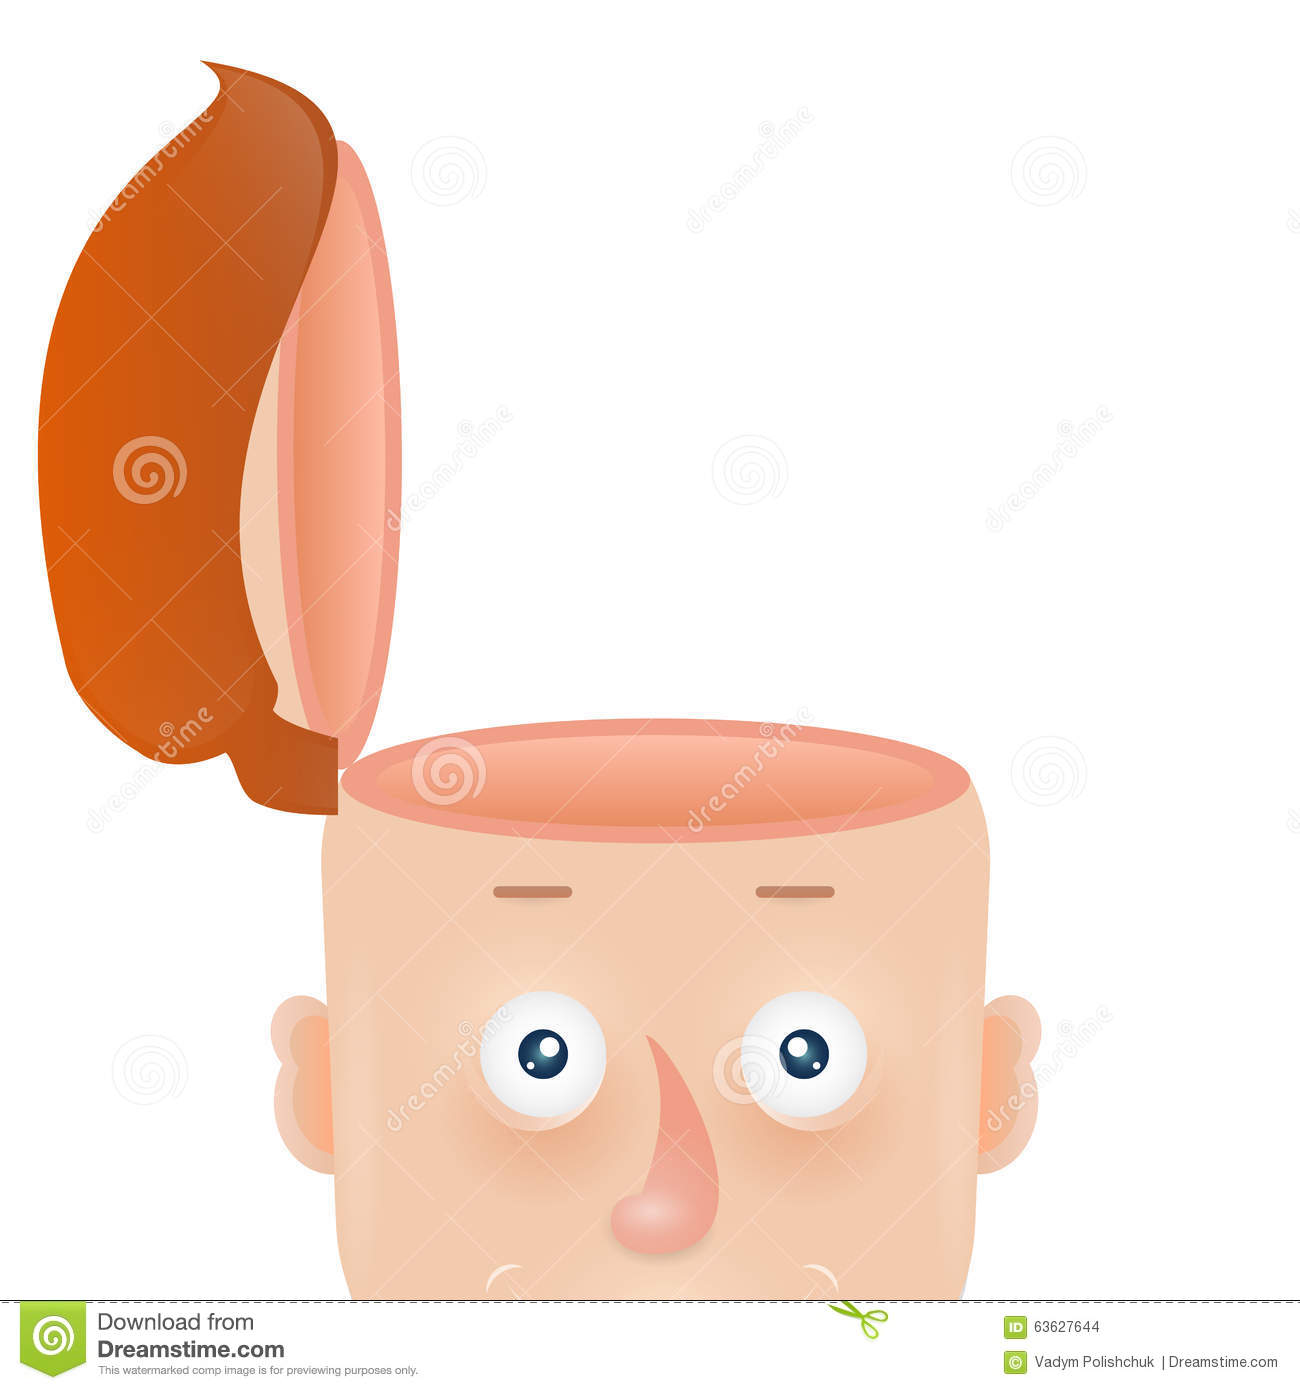 Funny Cartoon Head Of Man With An Open Skull Stock Vector ...